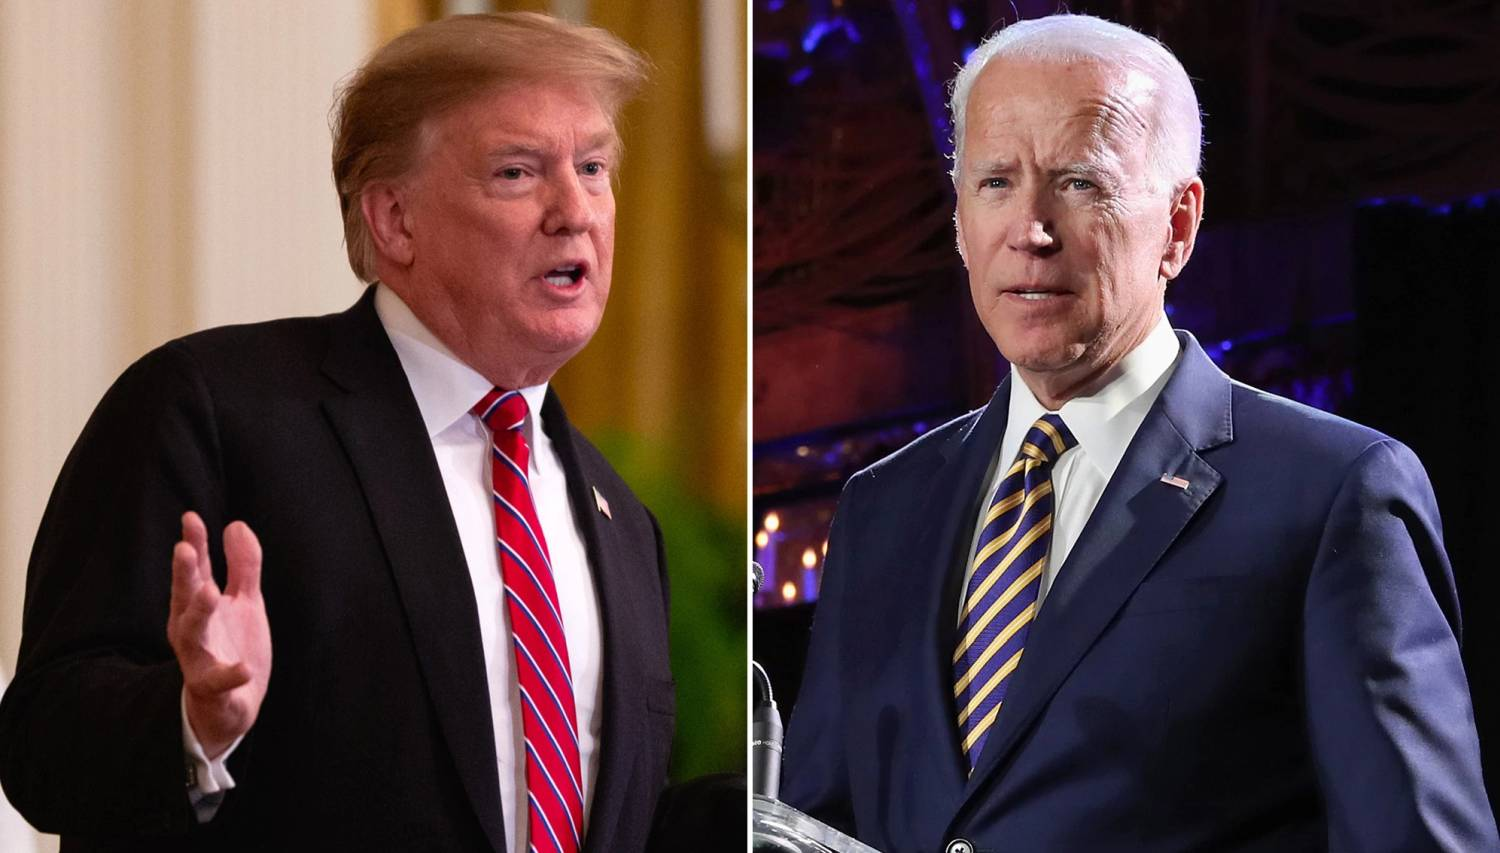 Sanders Campaign: Biden 'Flat Out Lied' About Our Health Care Plan